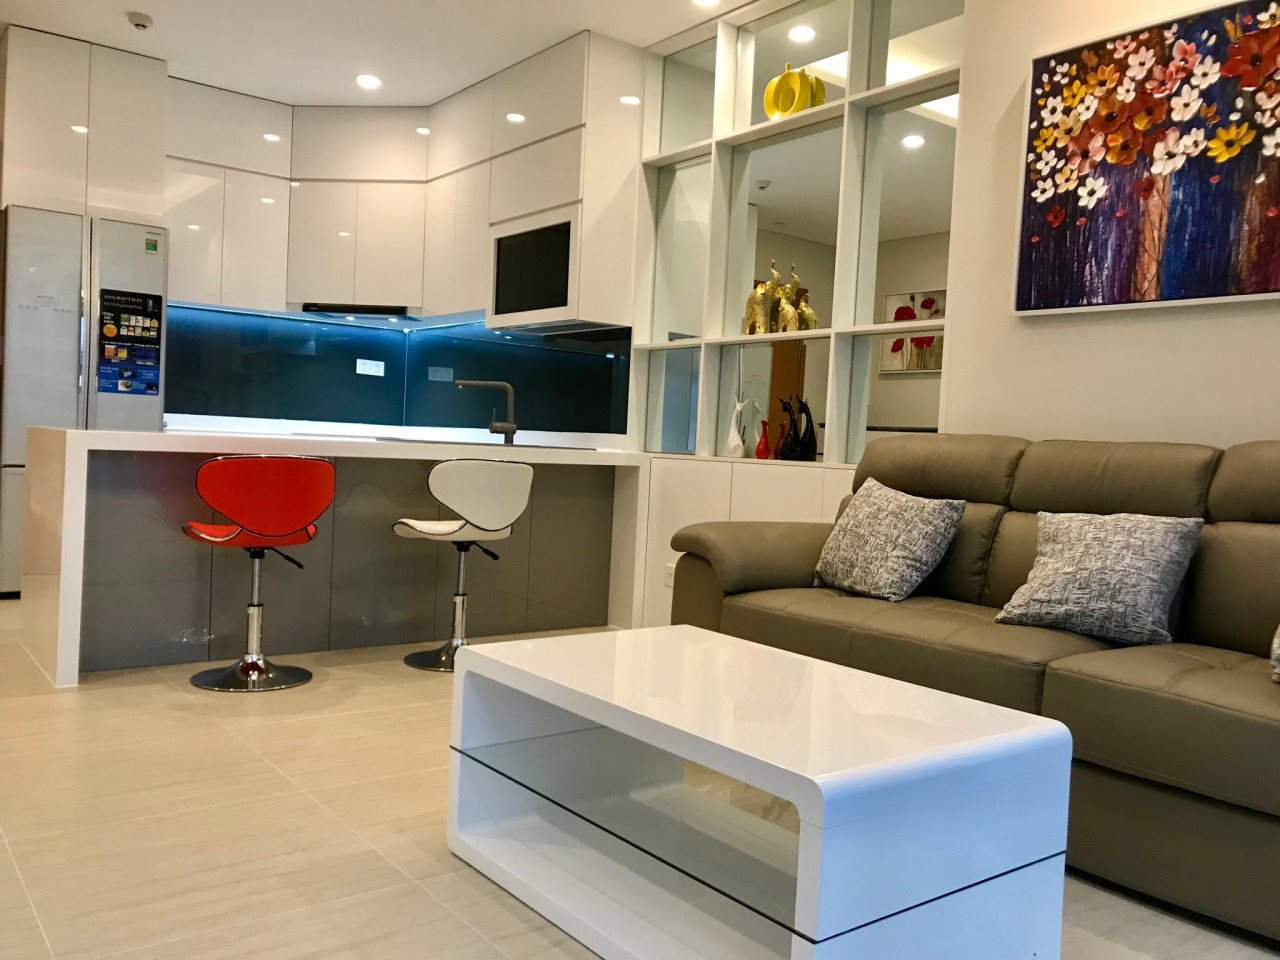 DI0208 - Diamond Island Apartment For Rent & Sale in Ho Chi Minh City - 1 bedroom